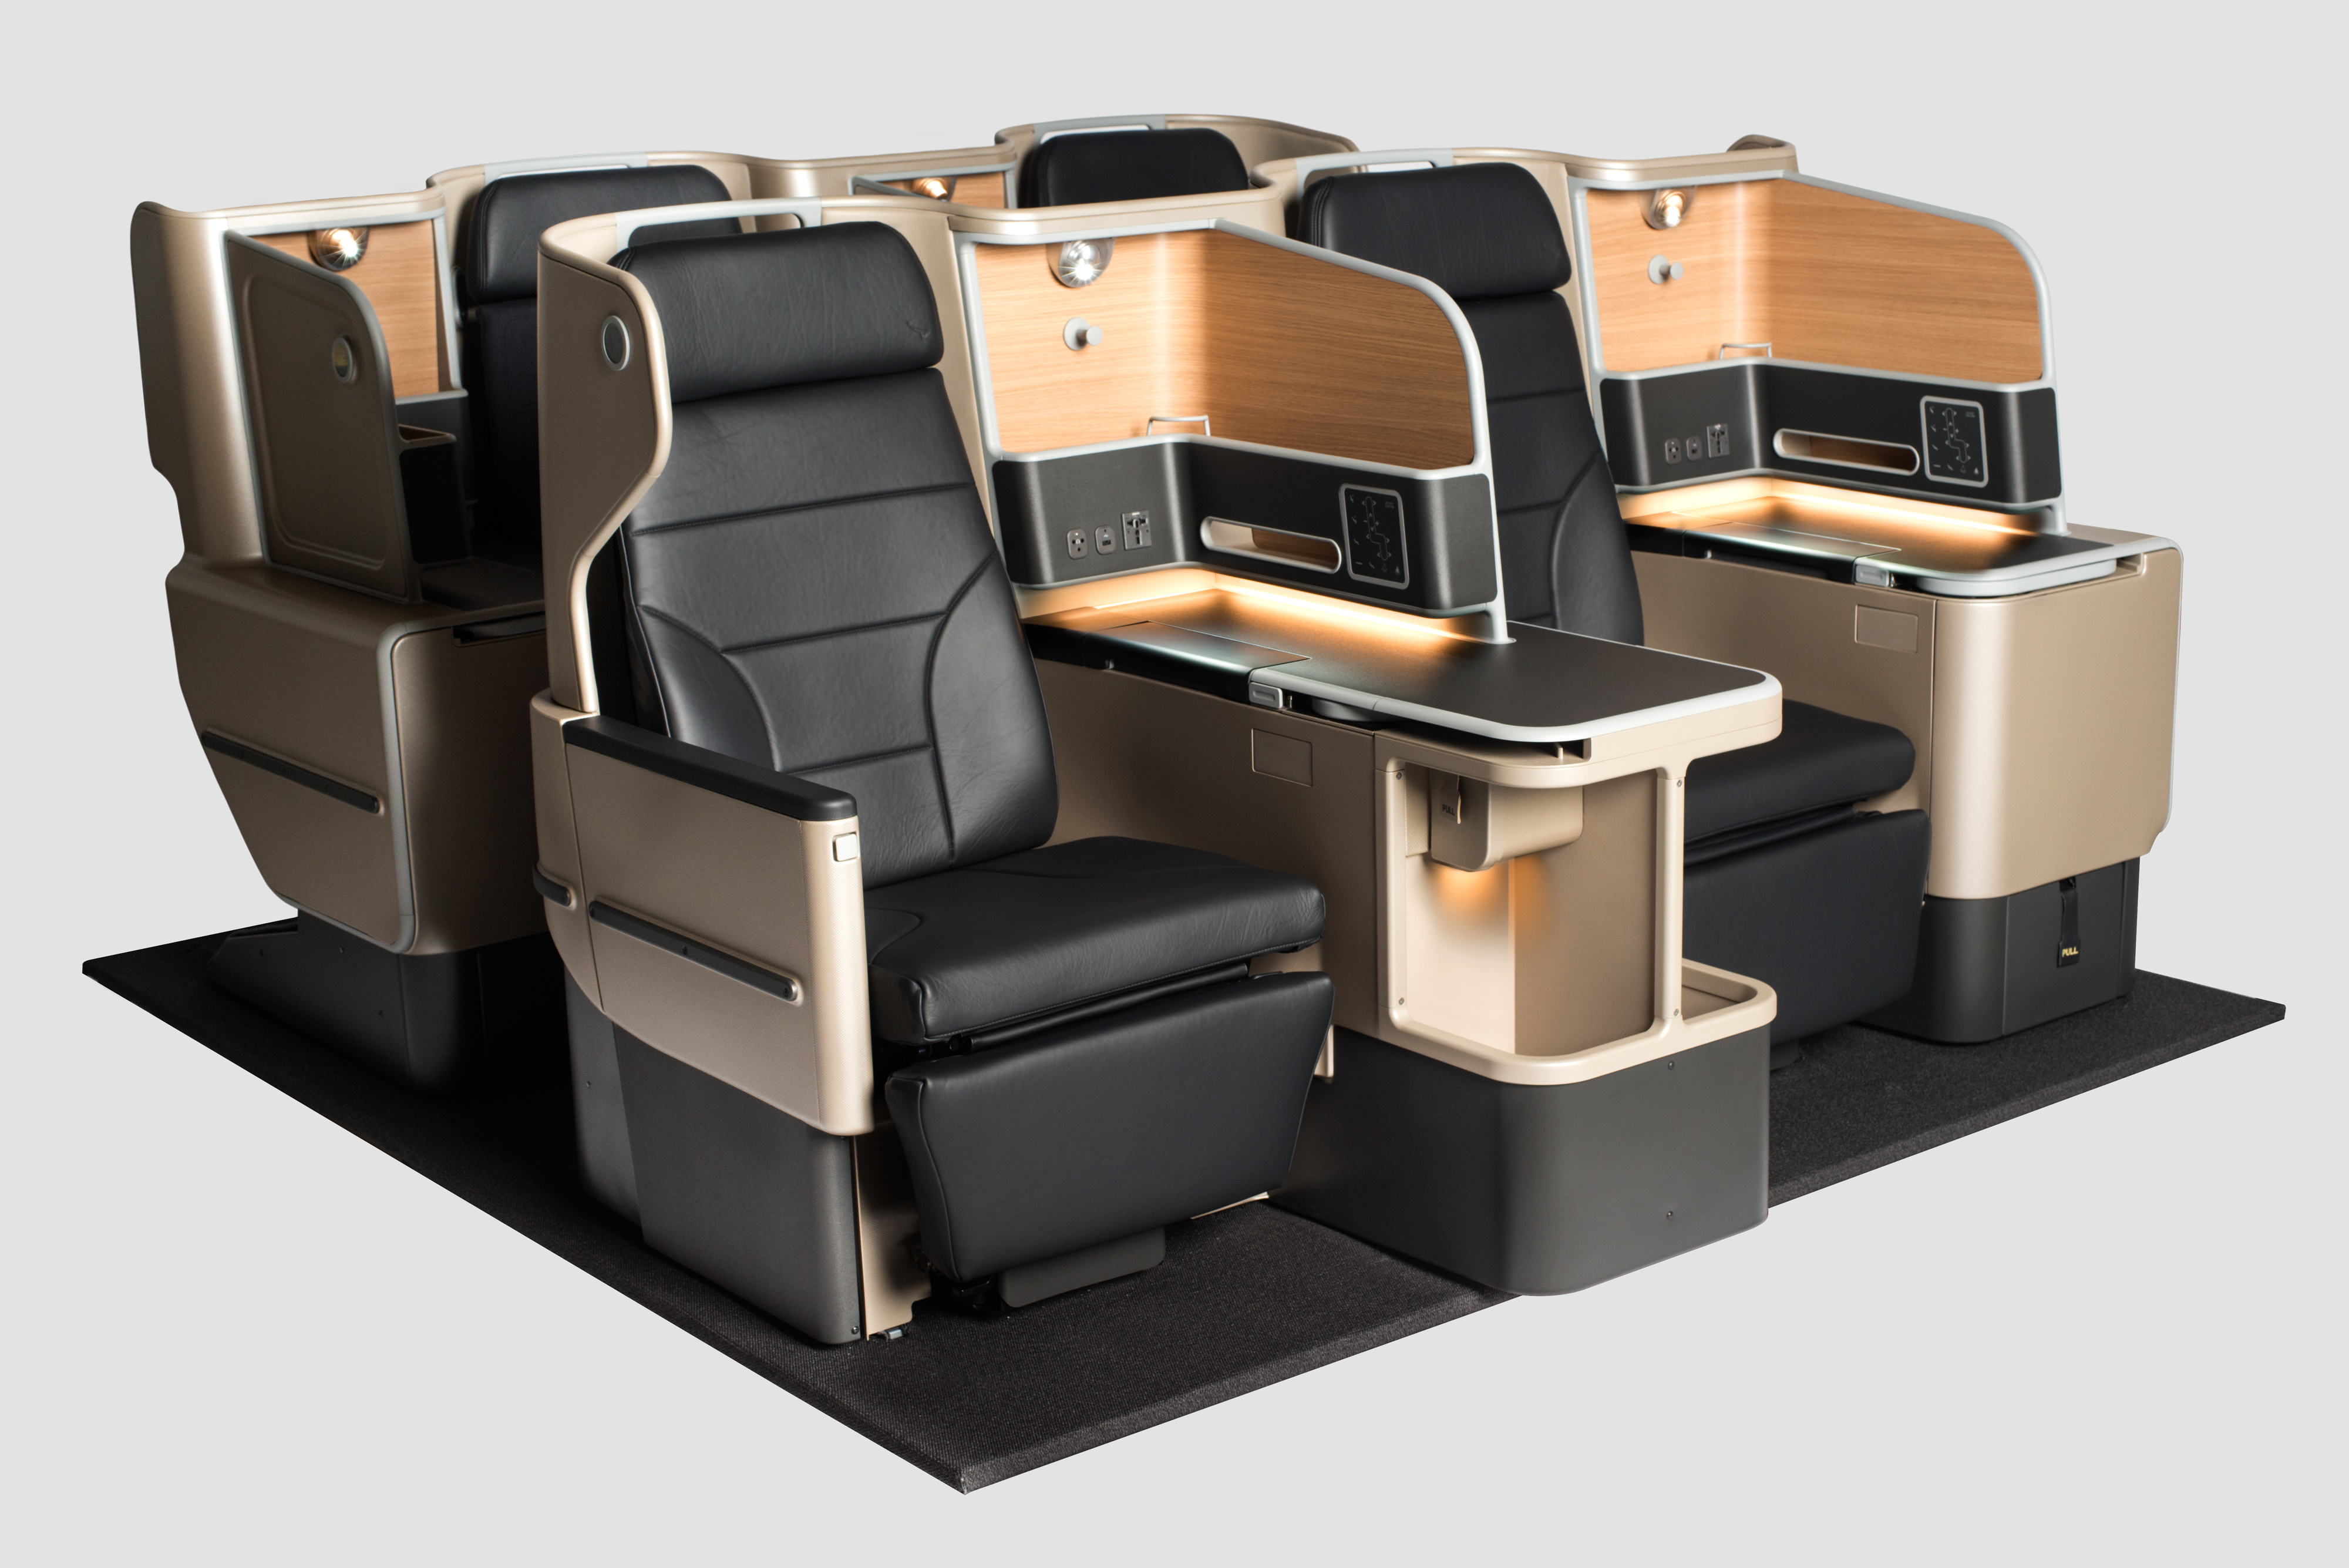 Qantas a330 business class seating unveiled thedesignair for Industrial design business